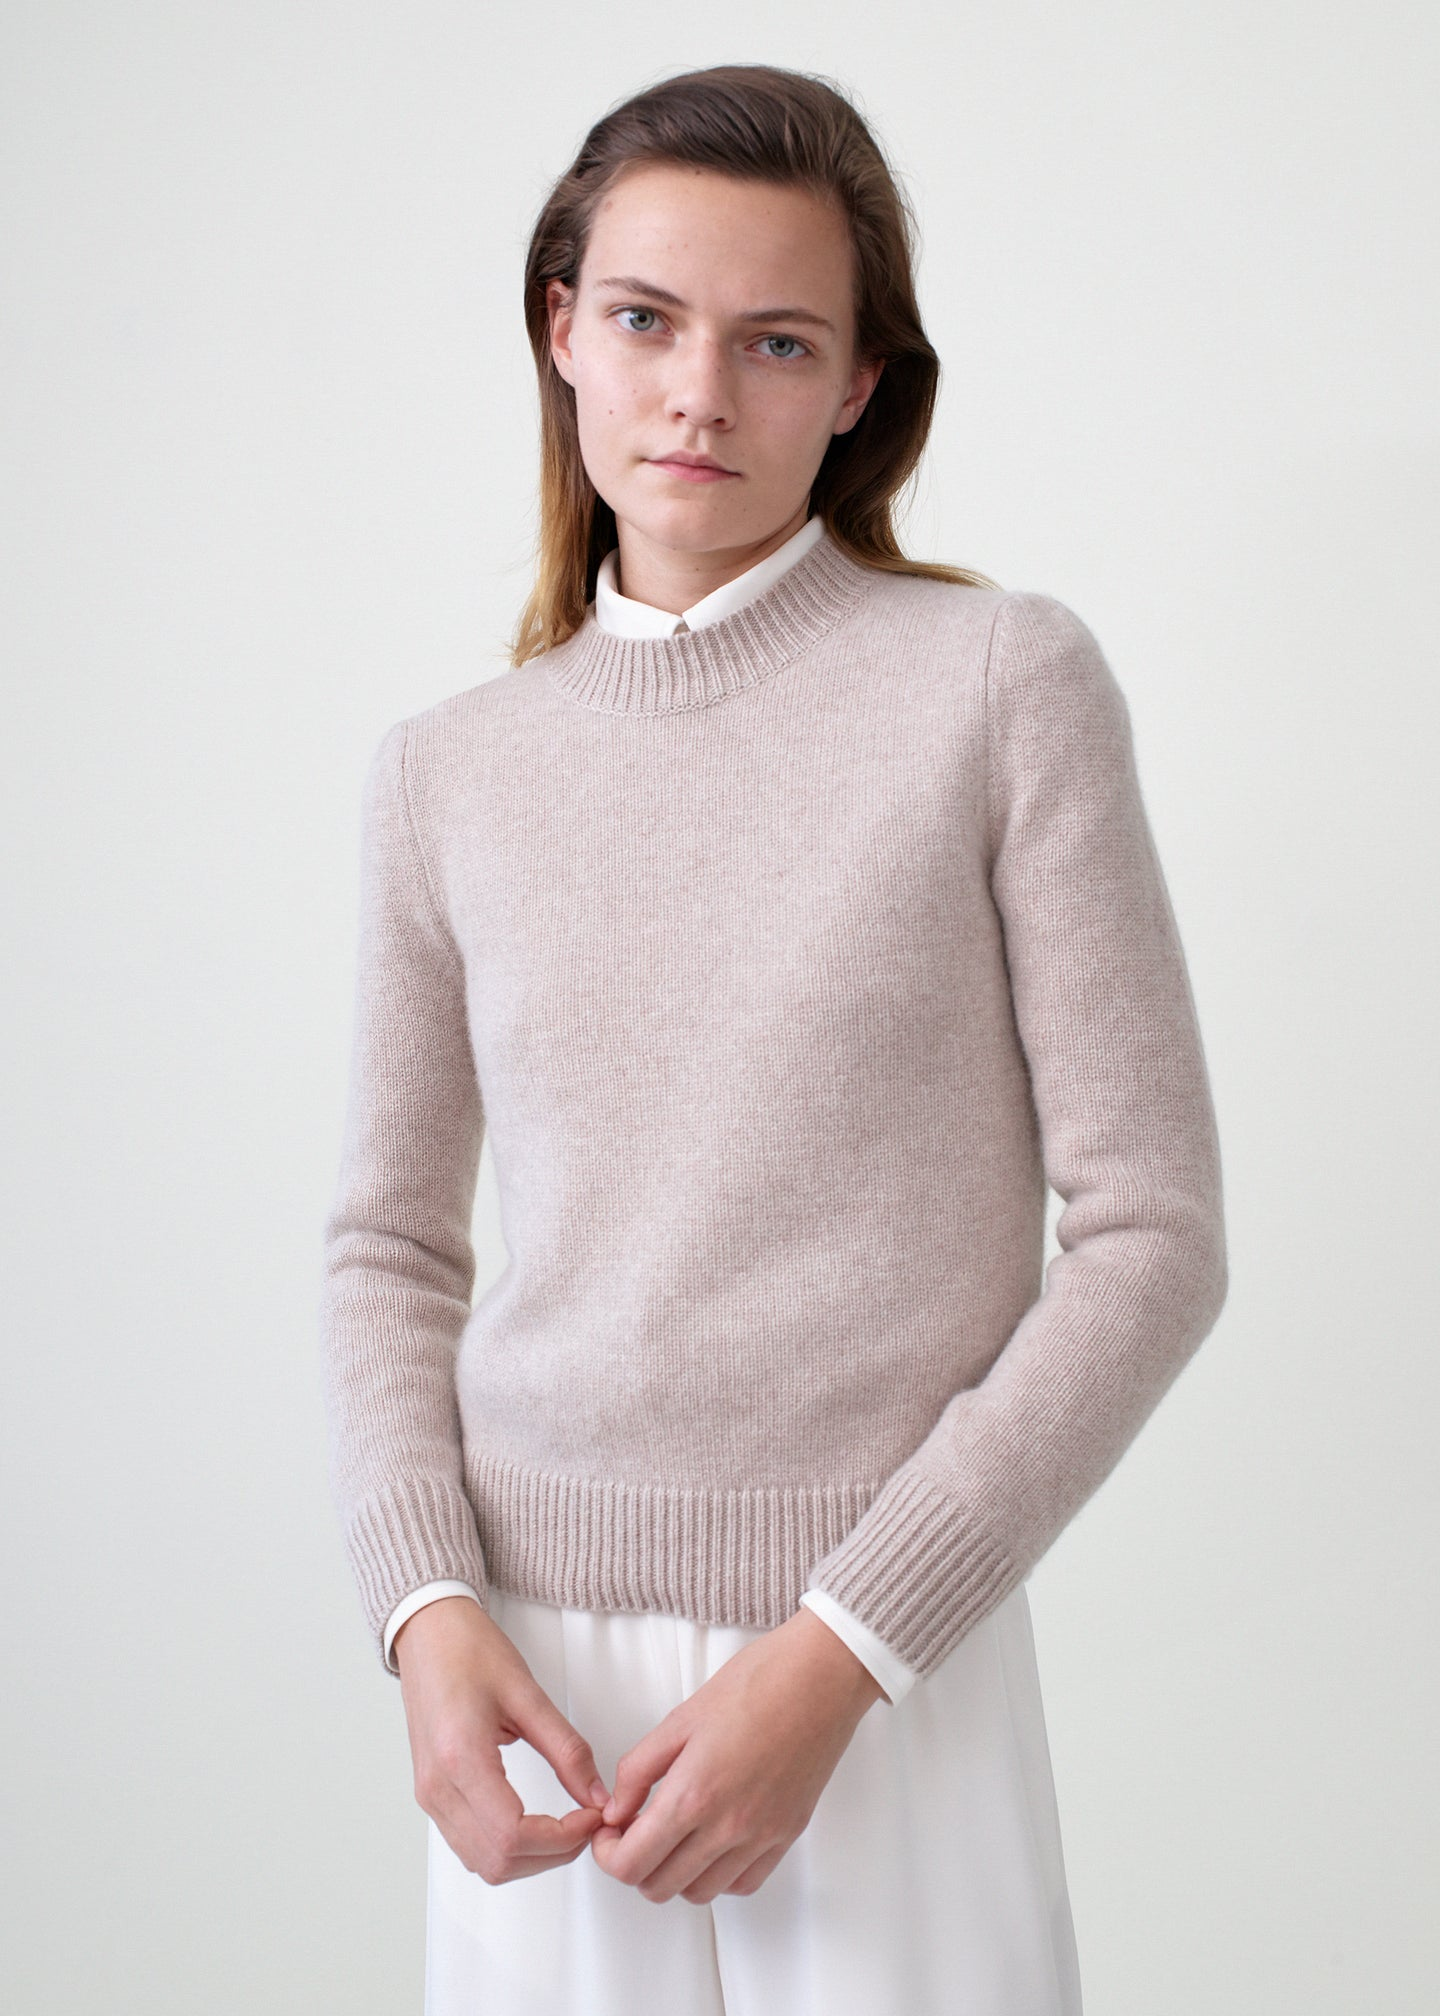 Ruched Cashmere Crew Neck Sweater - Sand Melange - CO